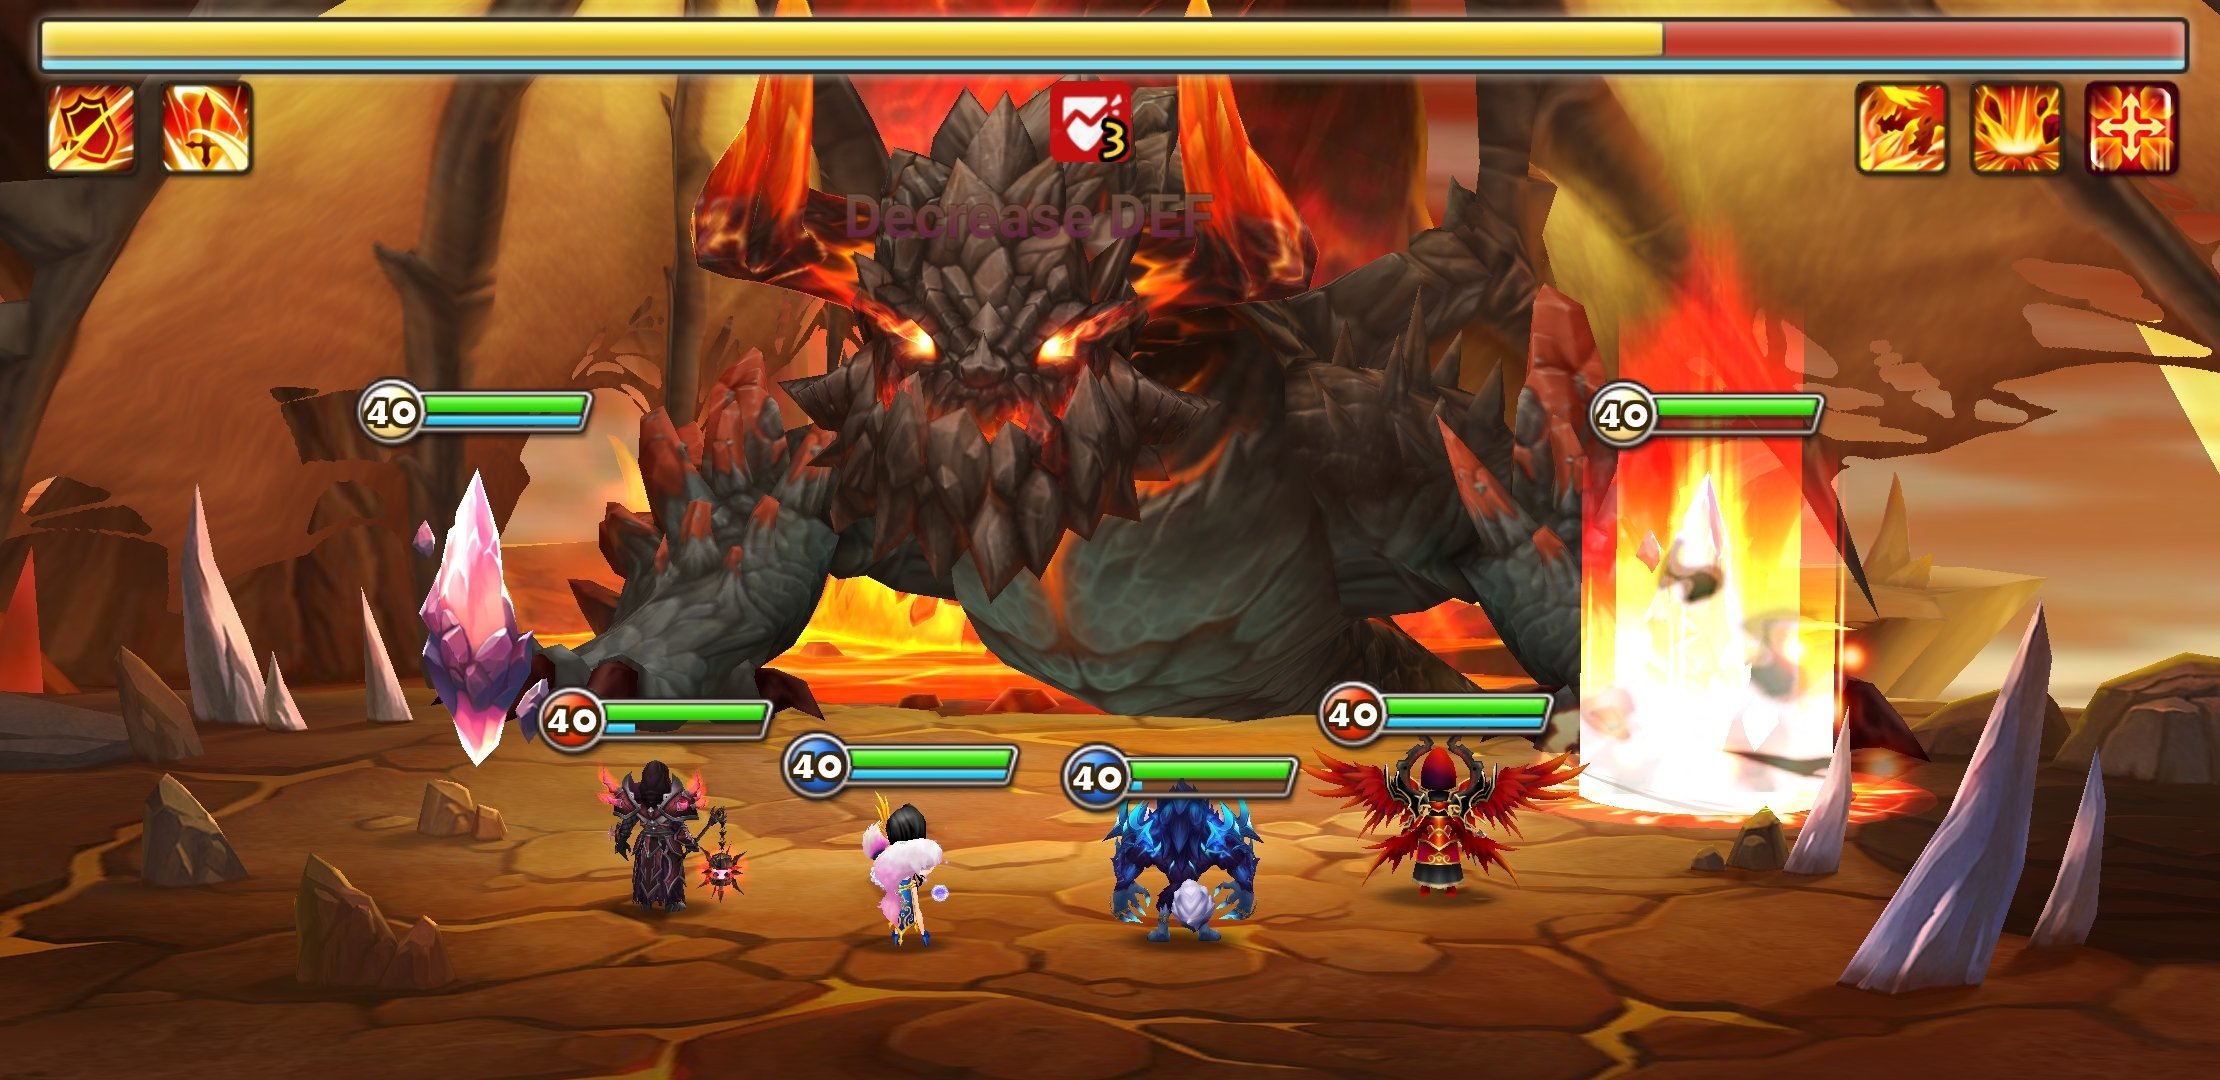 Summoners War: Sky Arena Android image 8